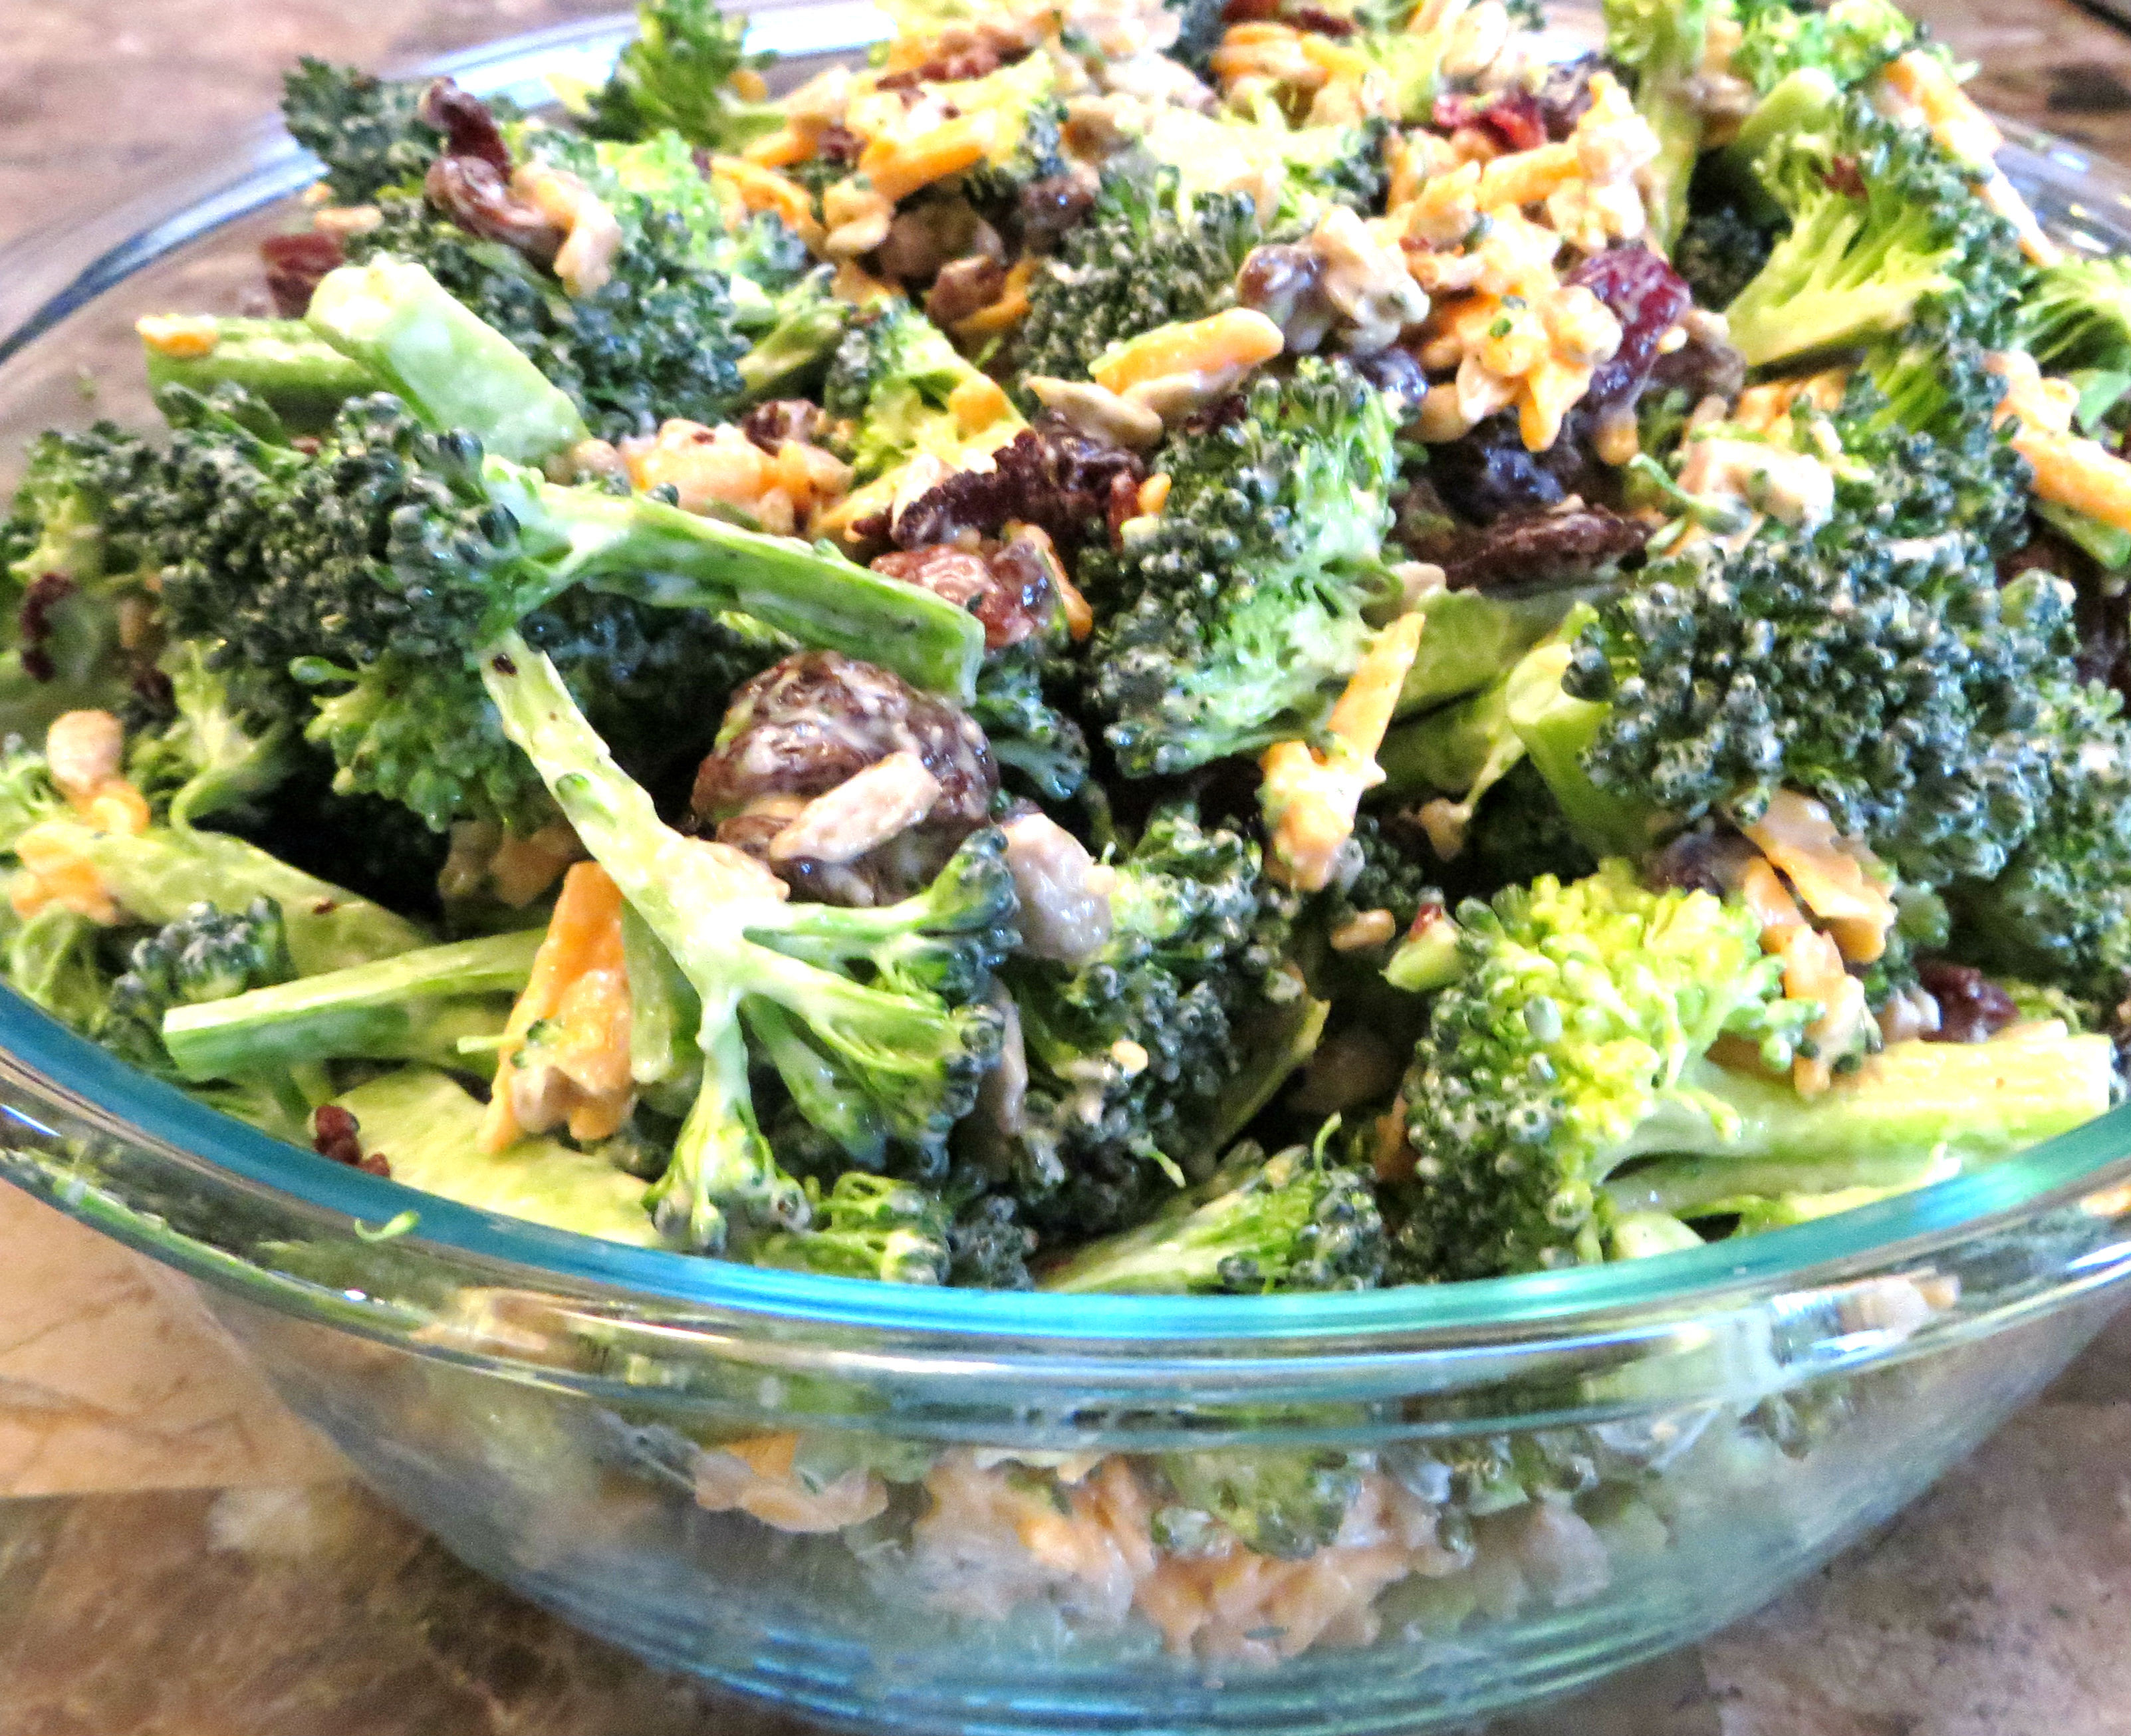 Broccoli Bacon Salad  Broccoli and Kale Salad with Bacon and Cranberries